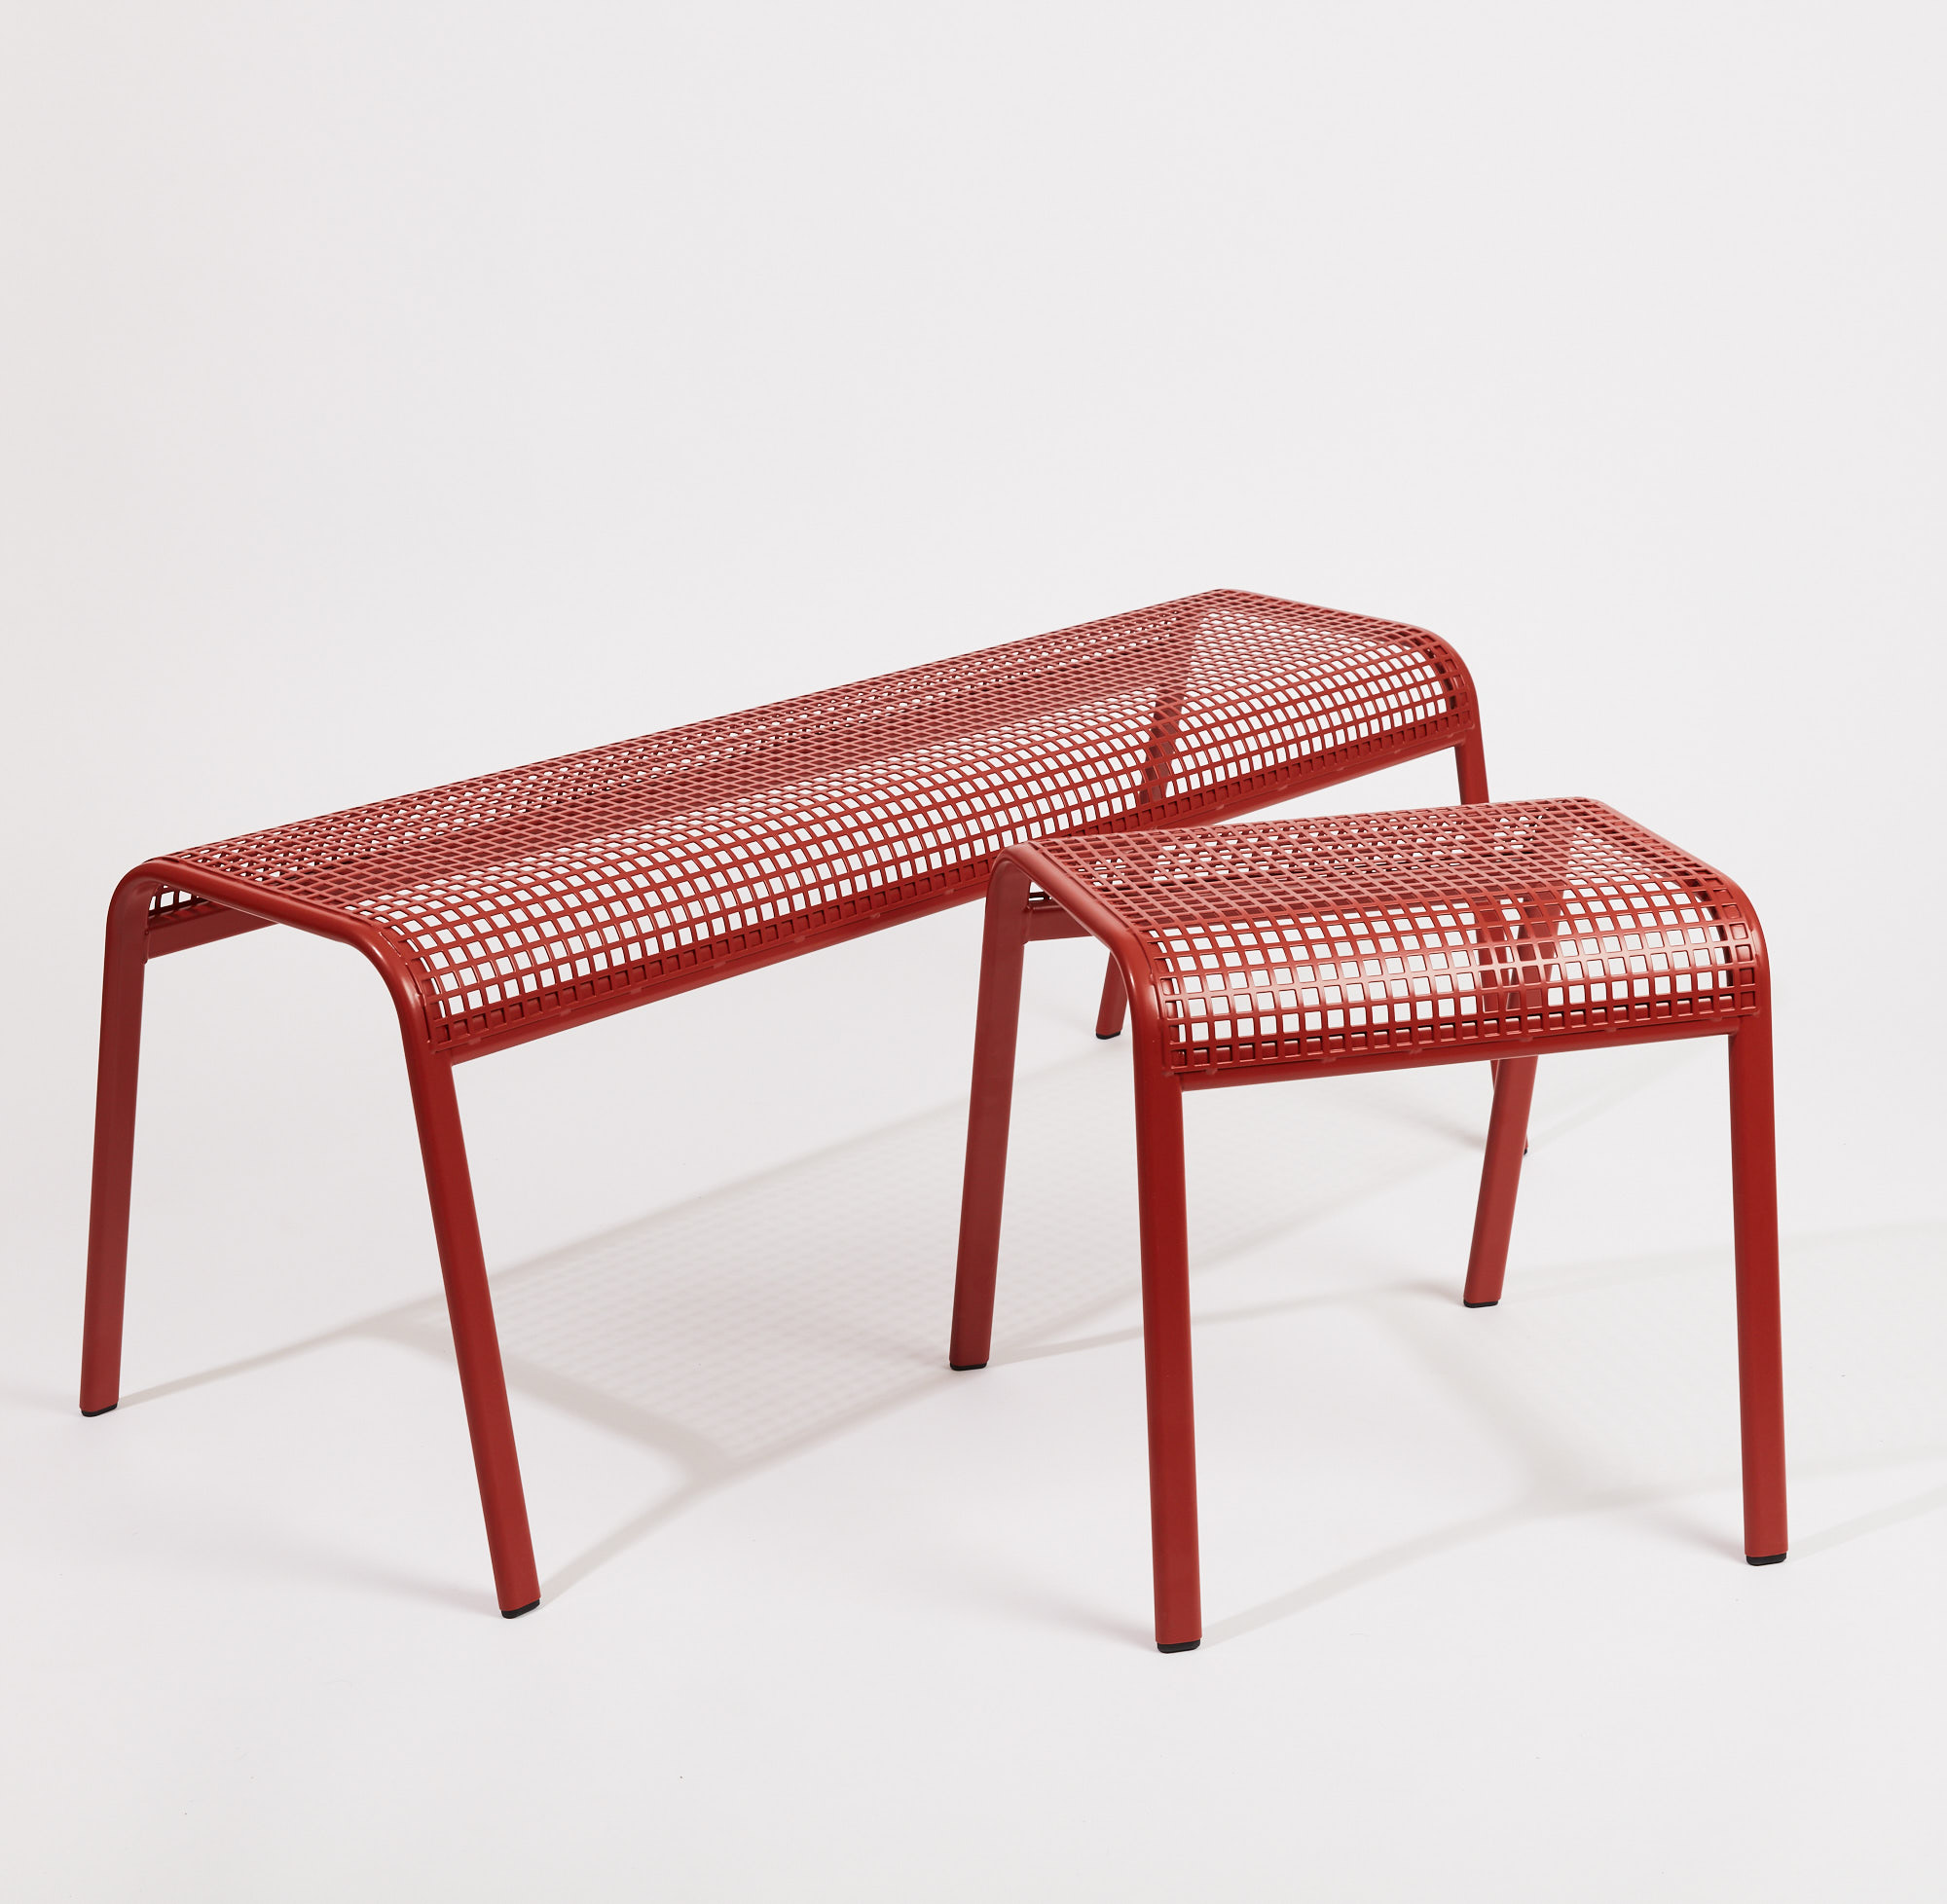 Sit with us: MPavilion 2019 stool by Chris Connell